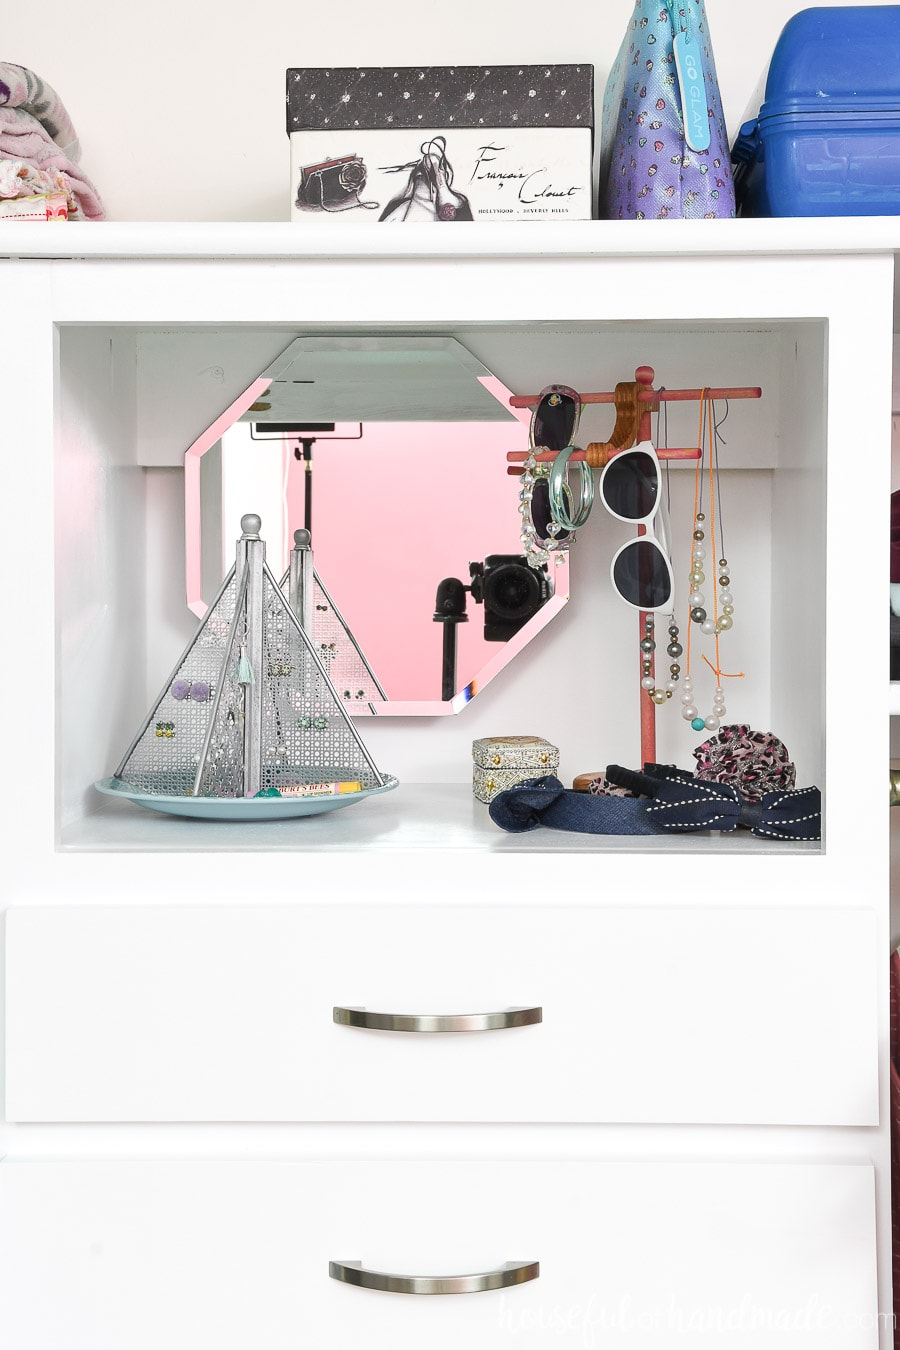 The top shelf of the closet organizer with jewelry organization for a girl.